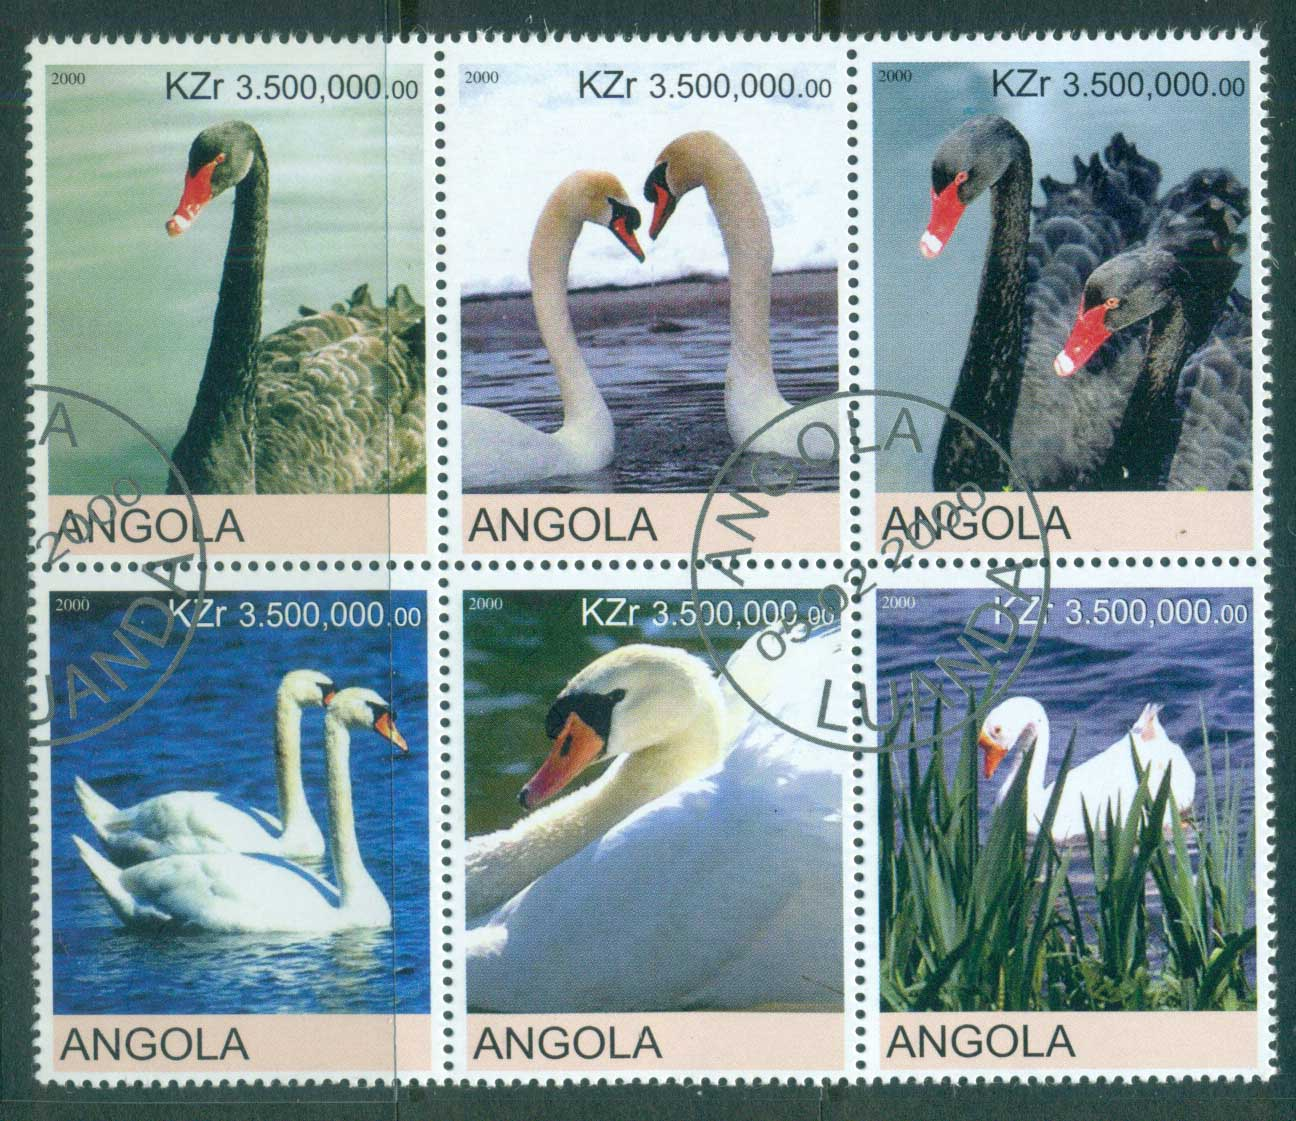 Angola 2000 Swans (Rebel Issue) CTO